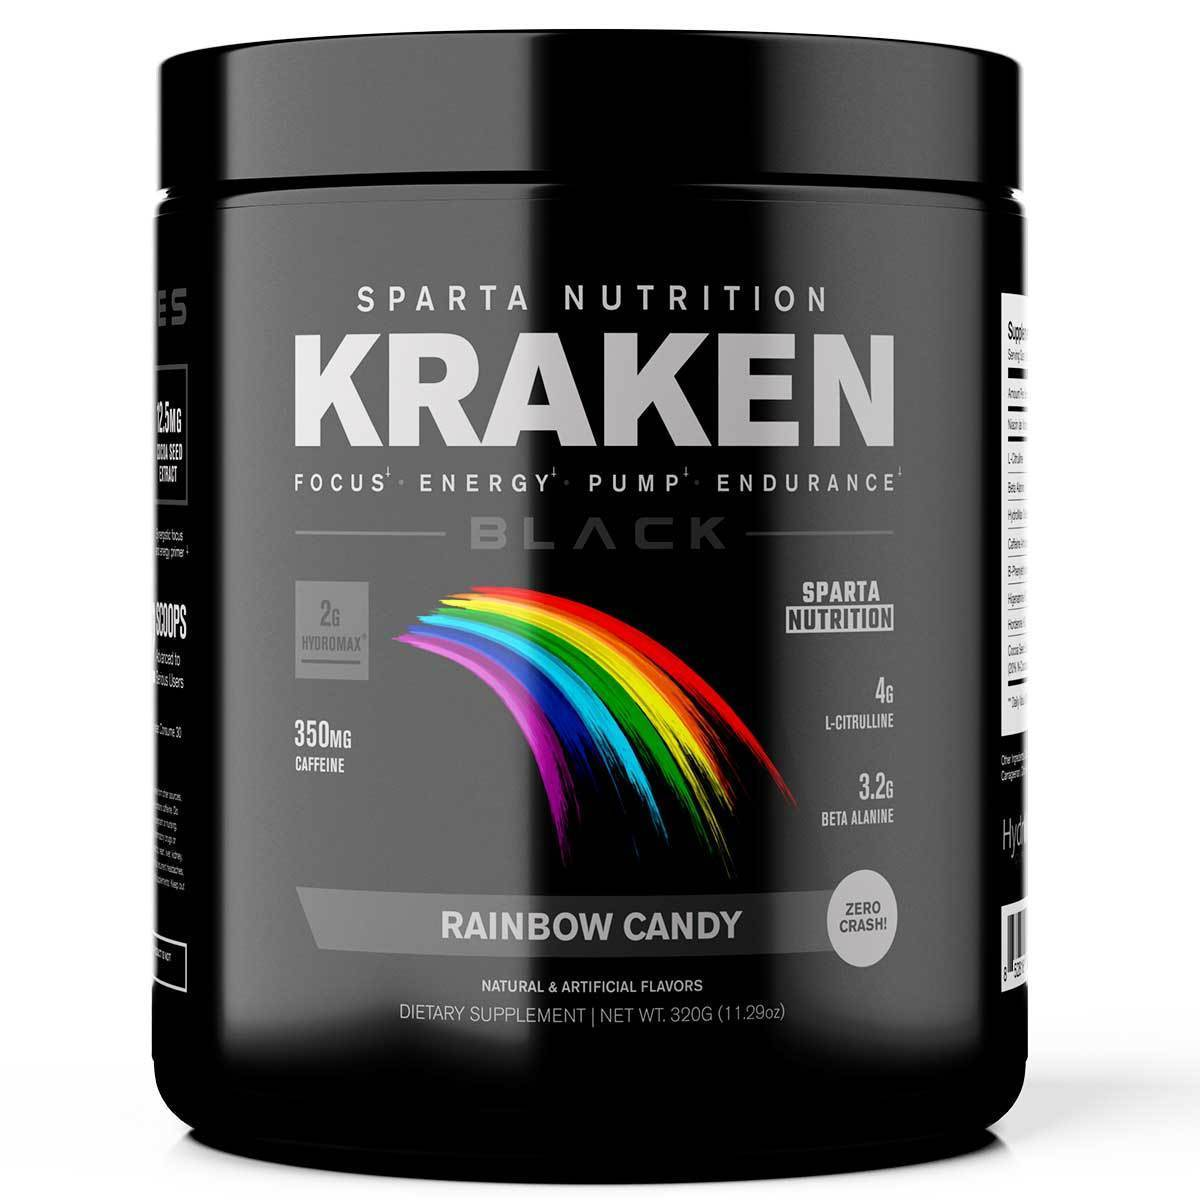 Sparta Nutrition kraken Black 320G ( Solid Form )